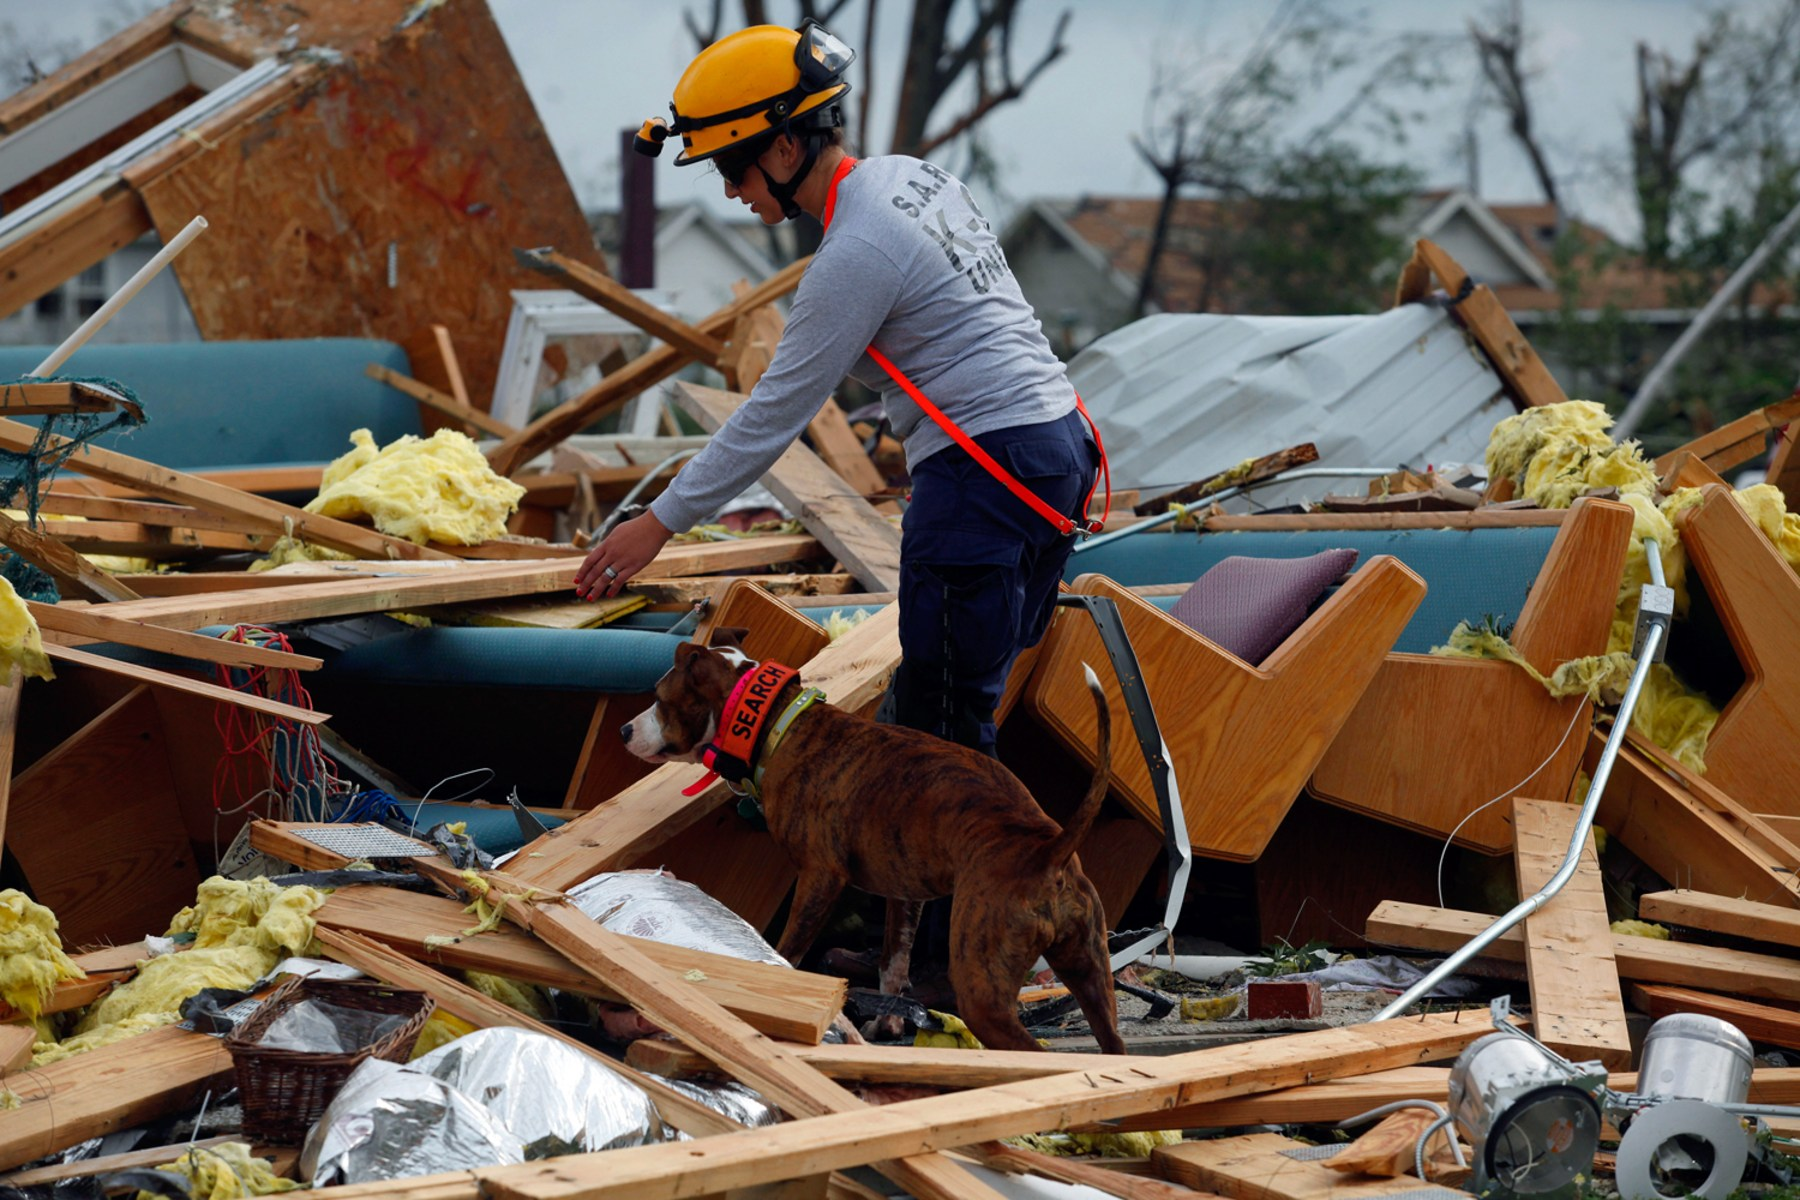 Deadly storms rake Midwest - TODAY.com